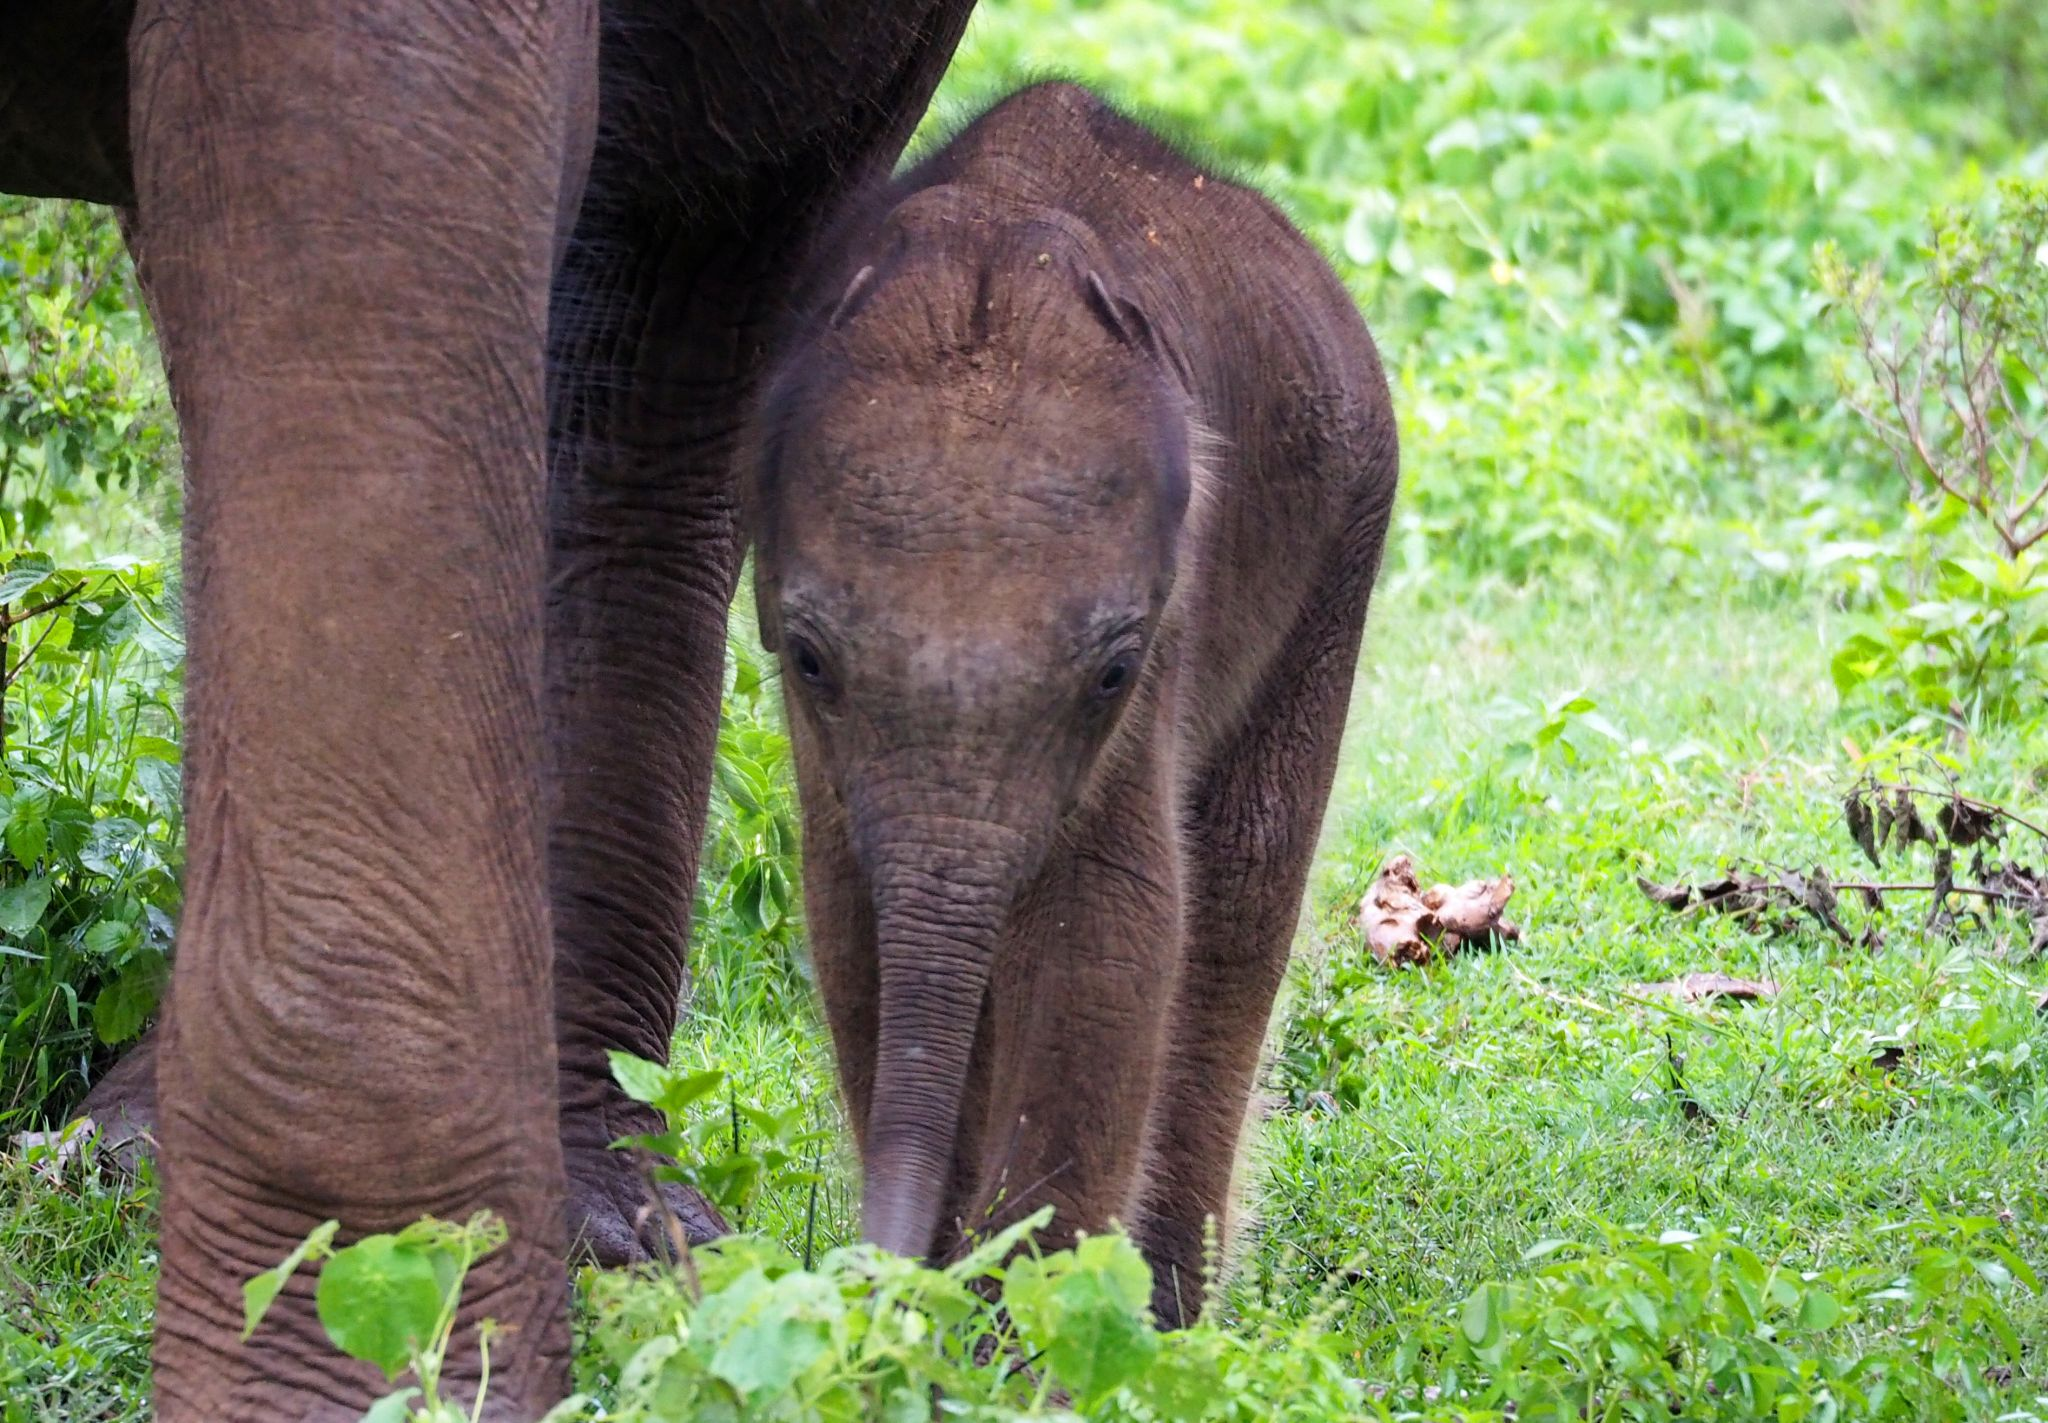 Newborn elephant Udawalwe National Park